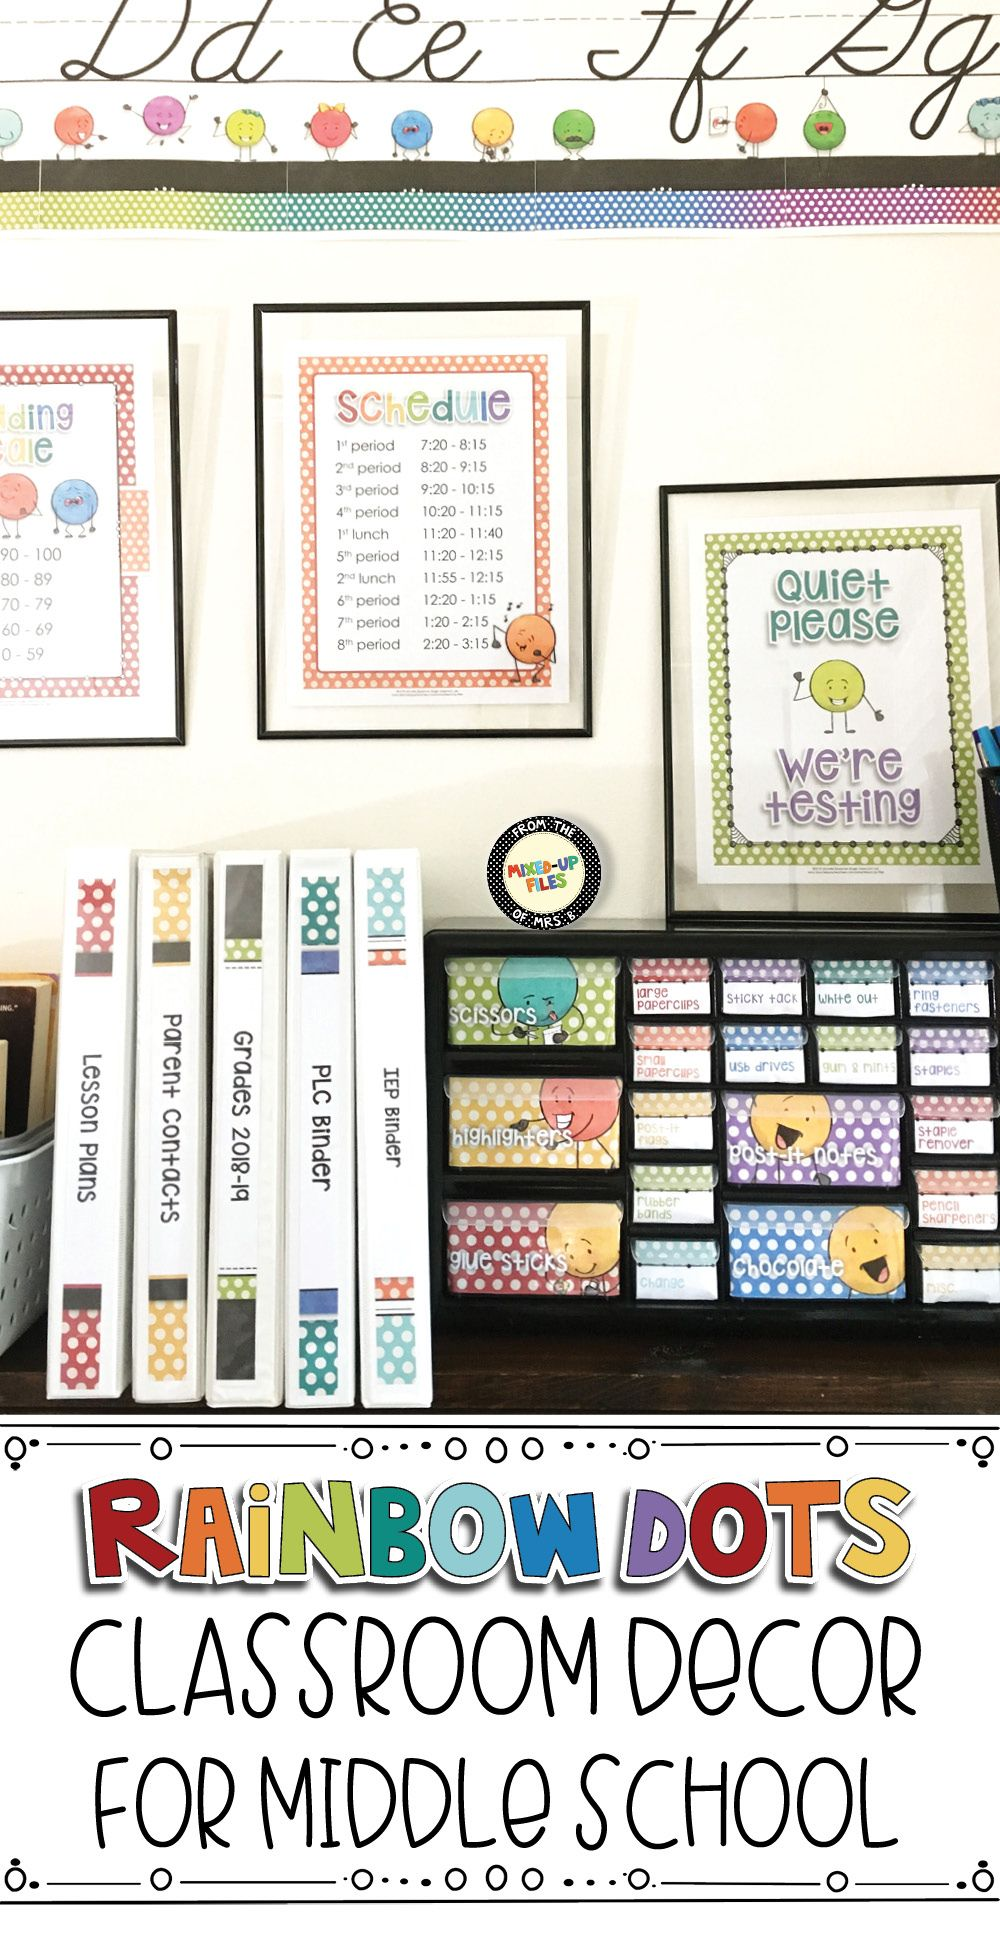 Organize And Decorate Your Middle School Classroom With Bright Rainbow